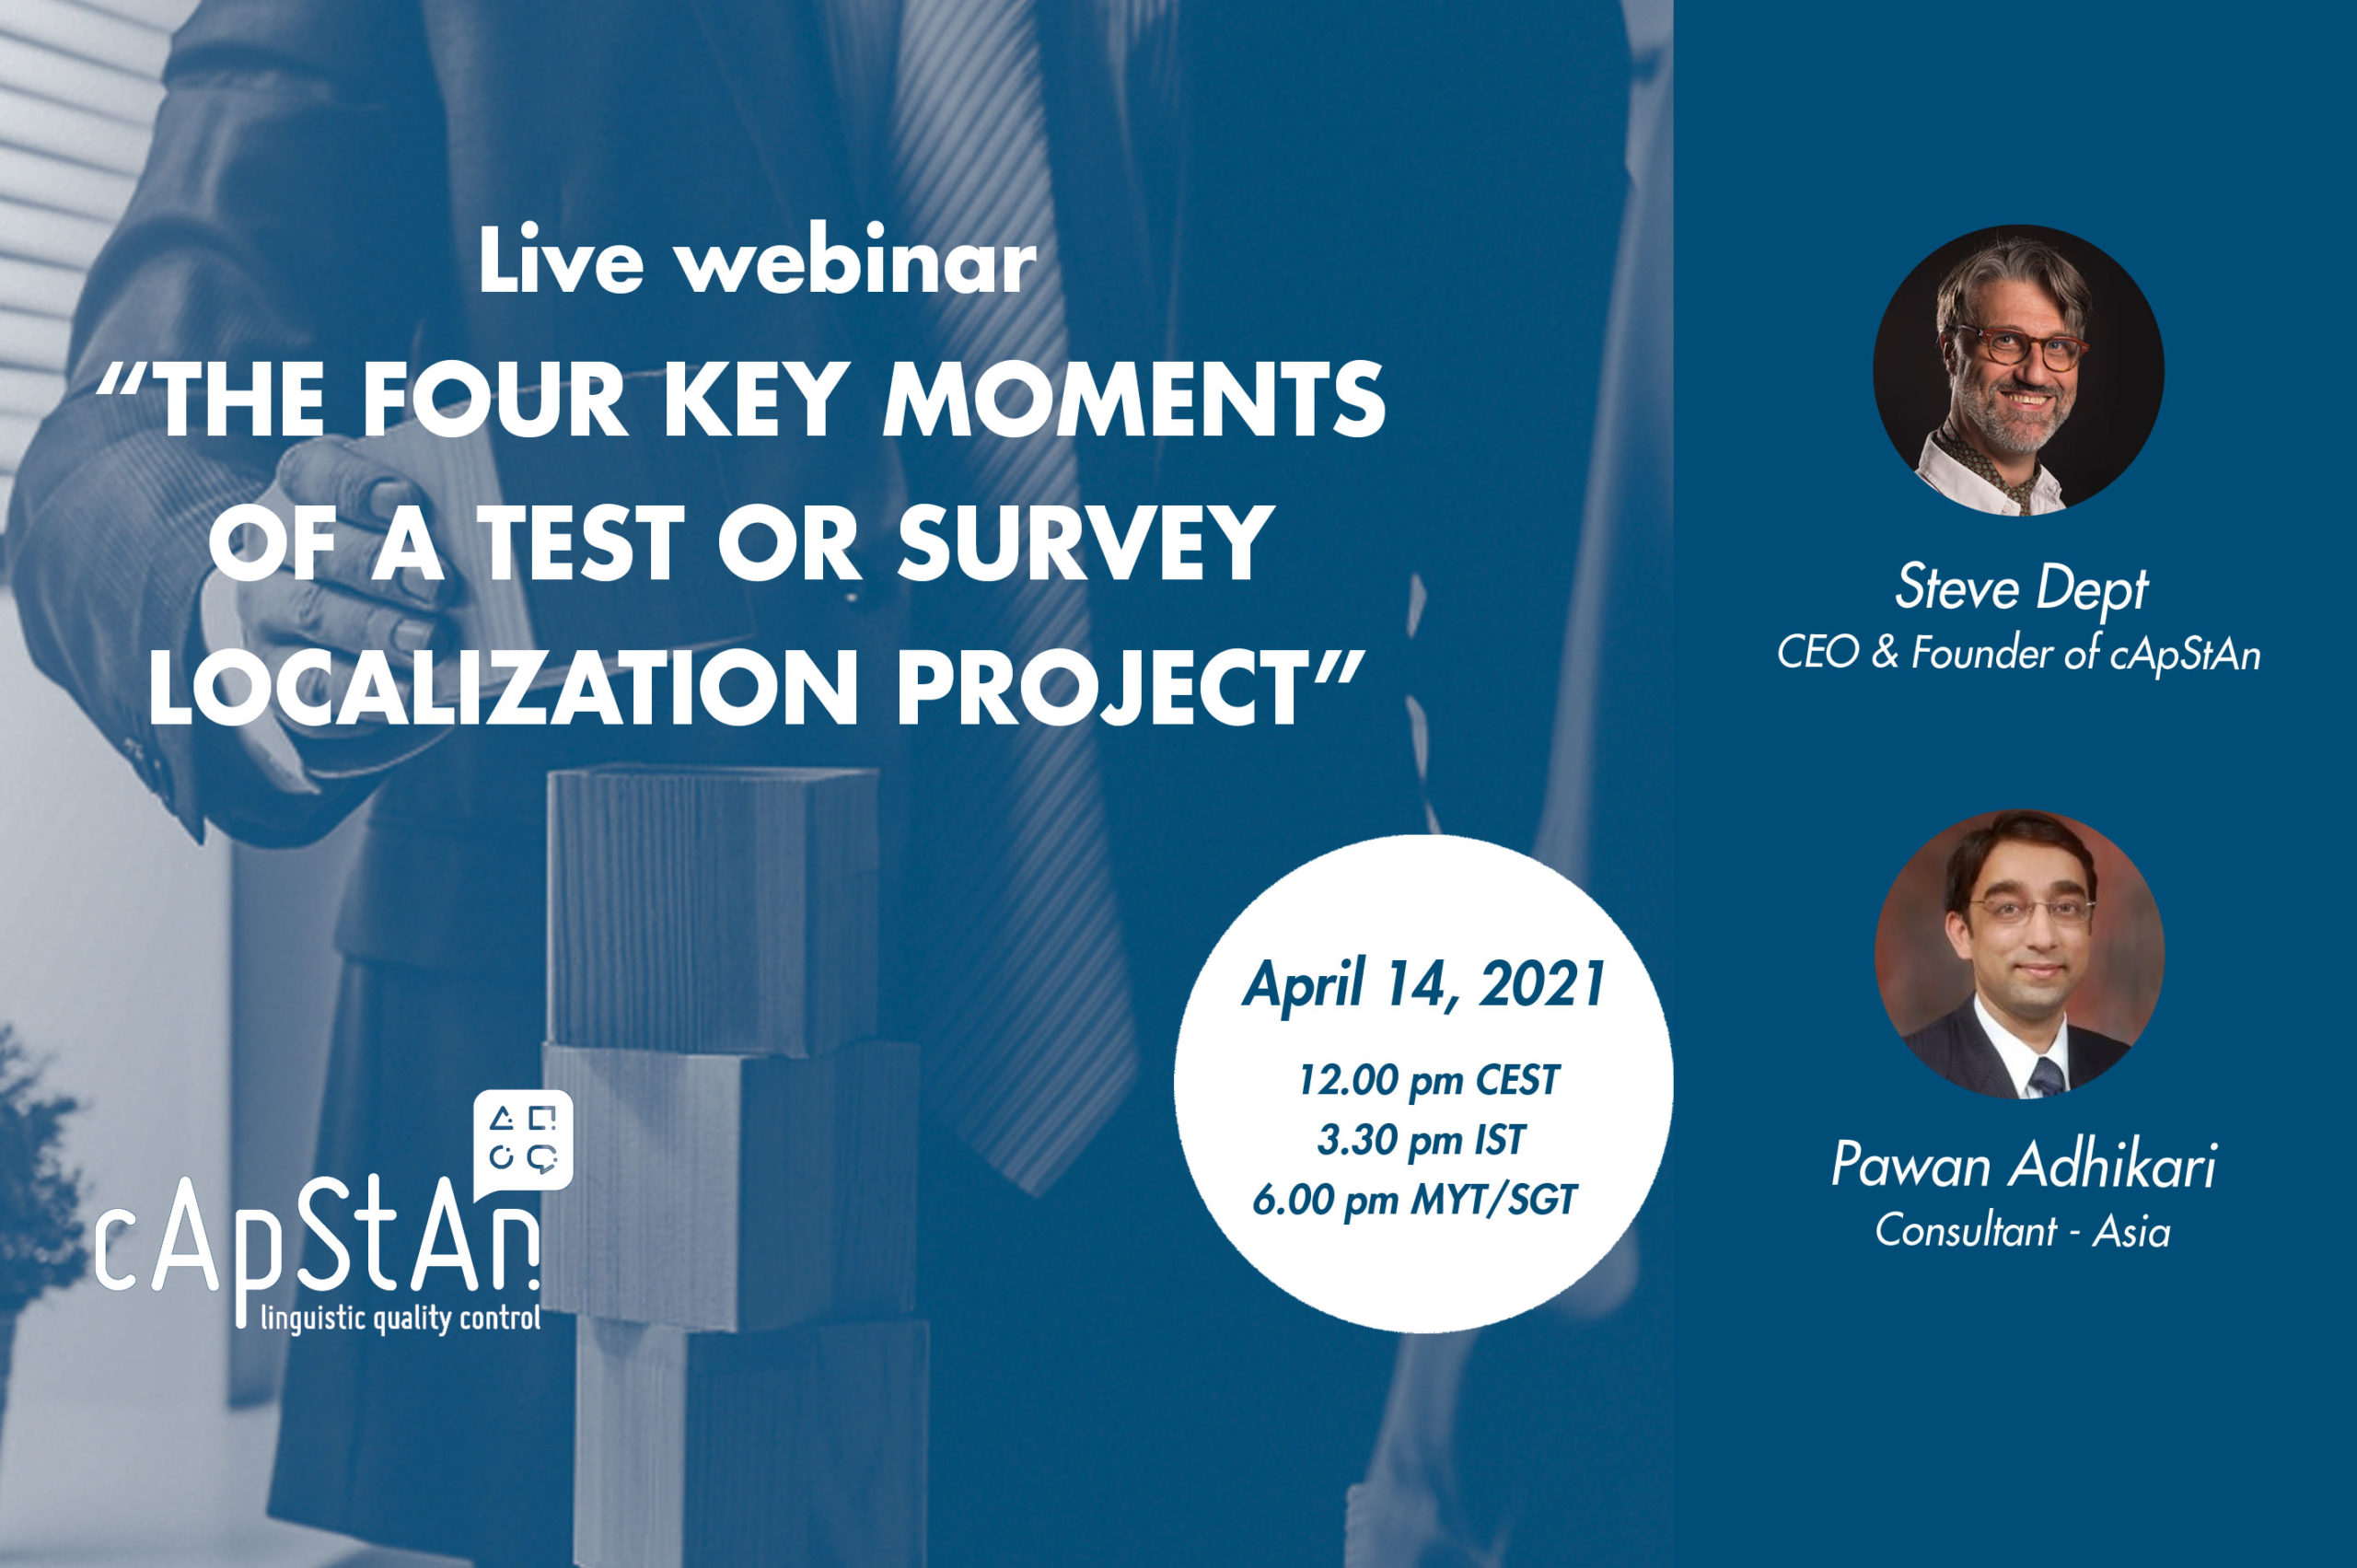 The Four Key Moments of a Test or Survey Localization Project